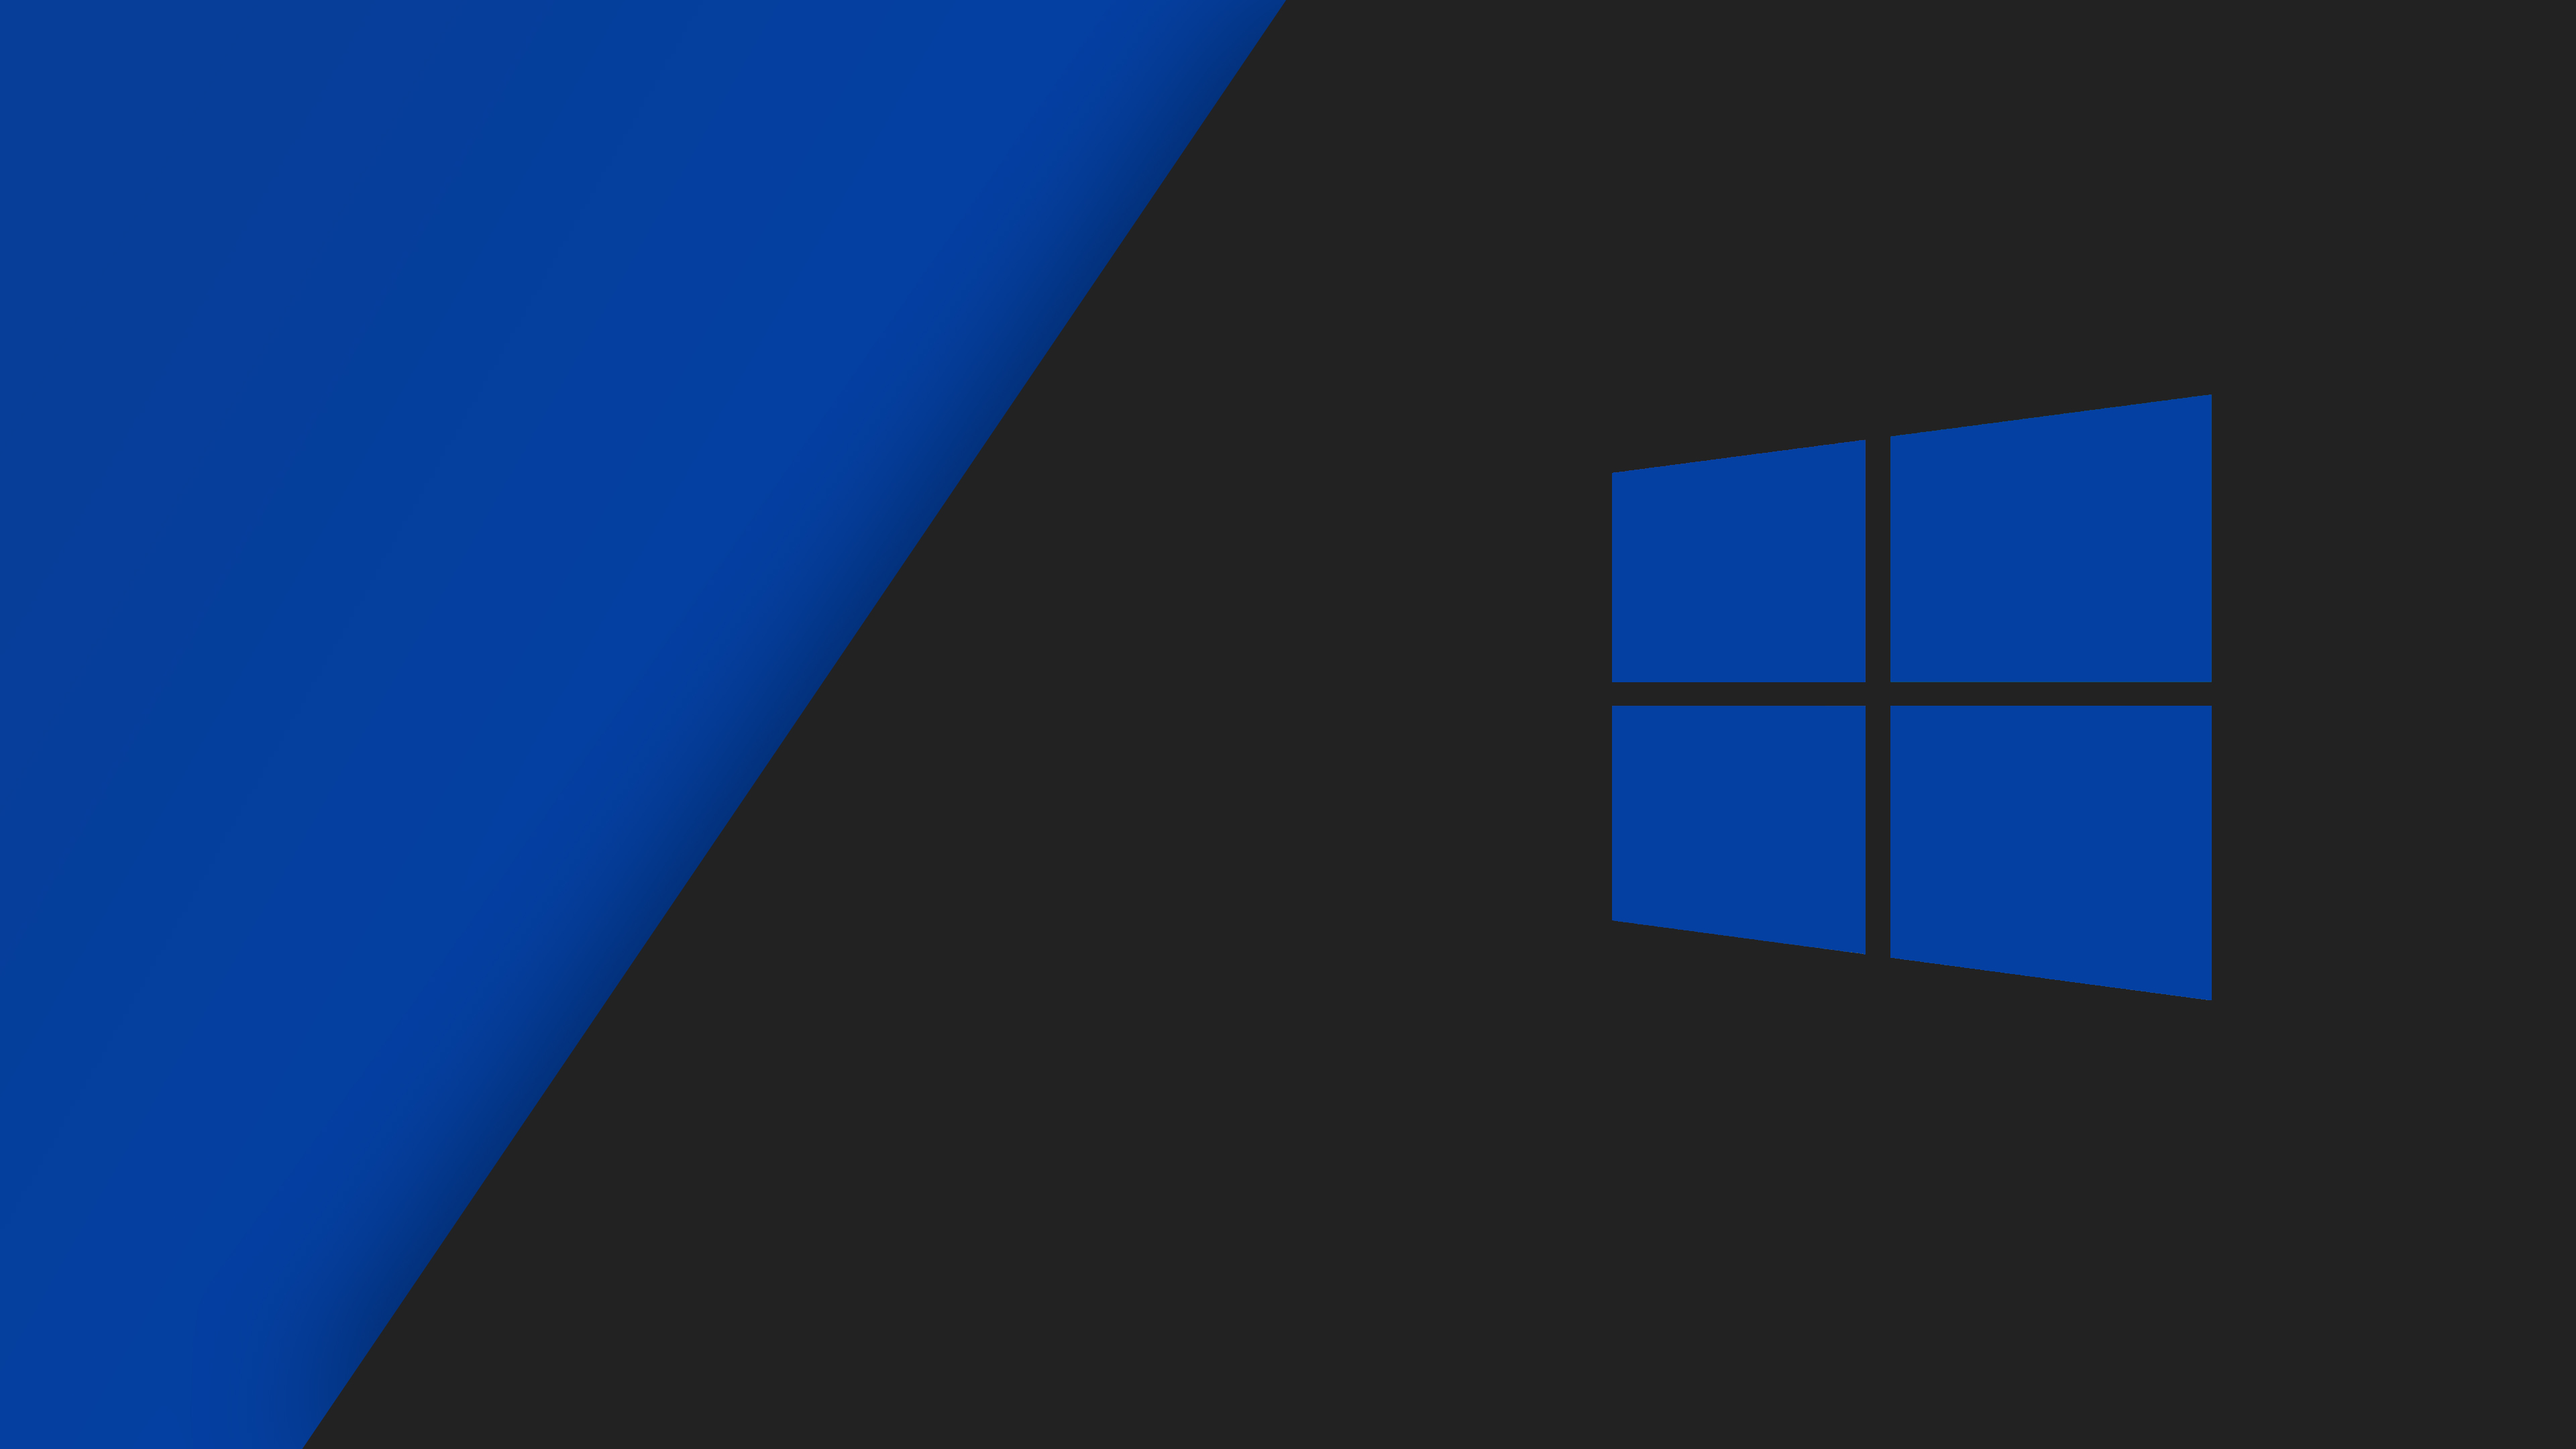 windows 10 wallpaperspectalfrag on deviantart